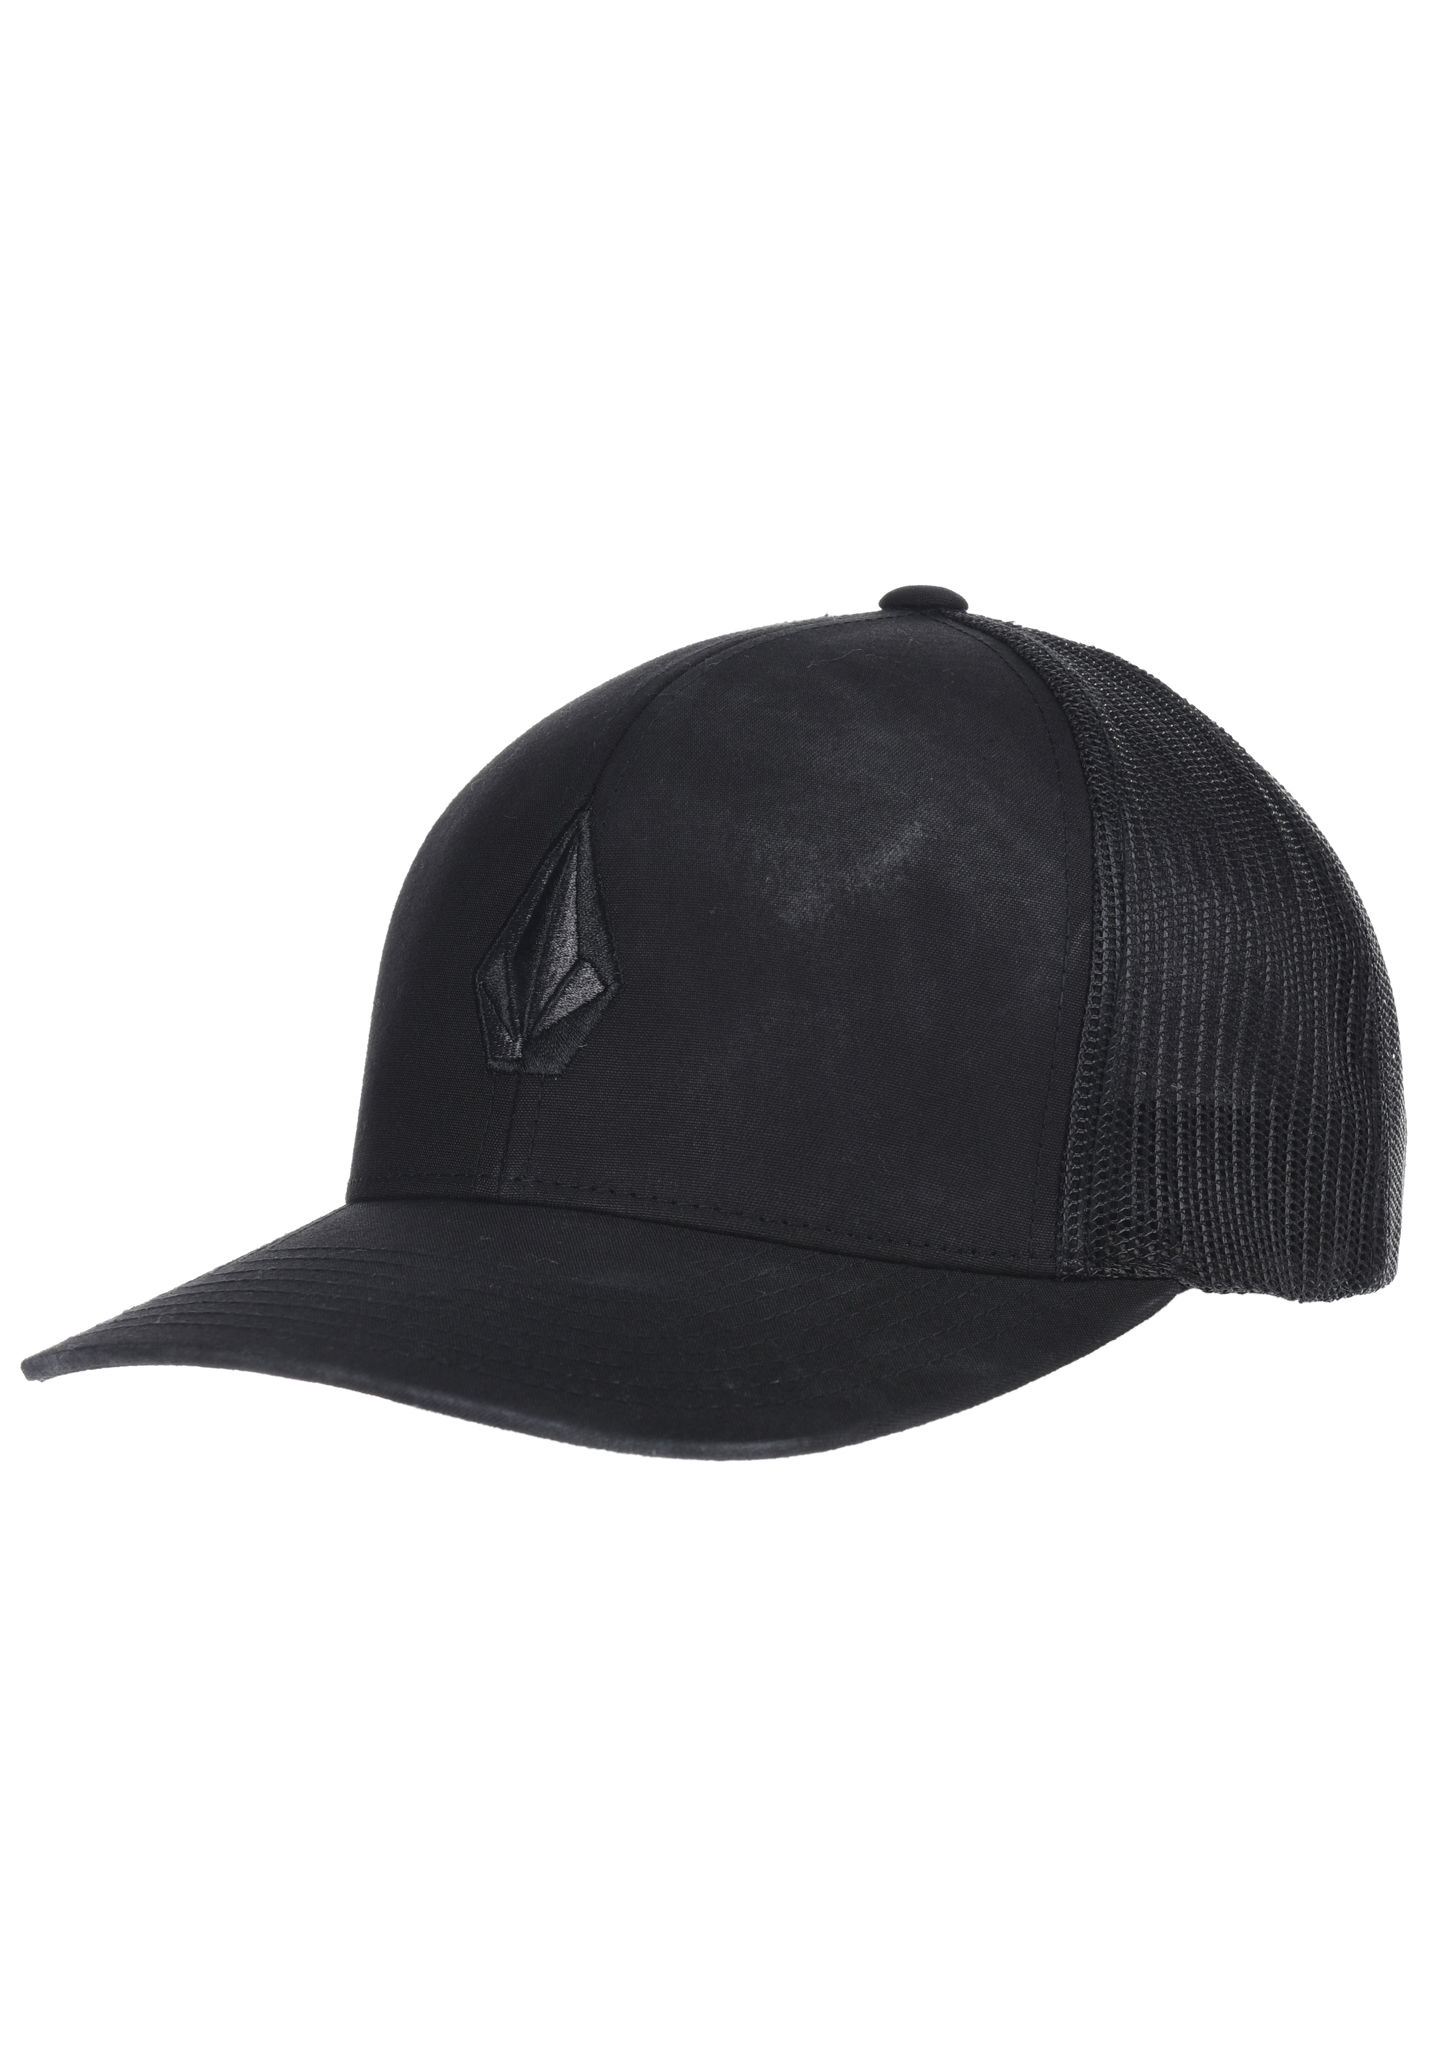 Volcom Full Stone Cheese - Trucker Cap for Men - Black - Planet Sports 946a4cb3ce16